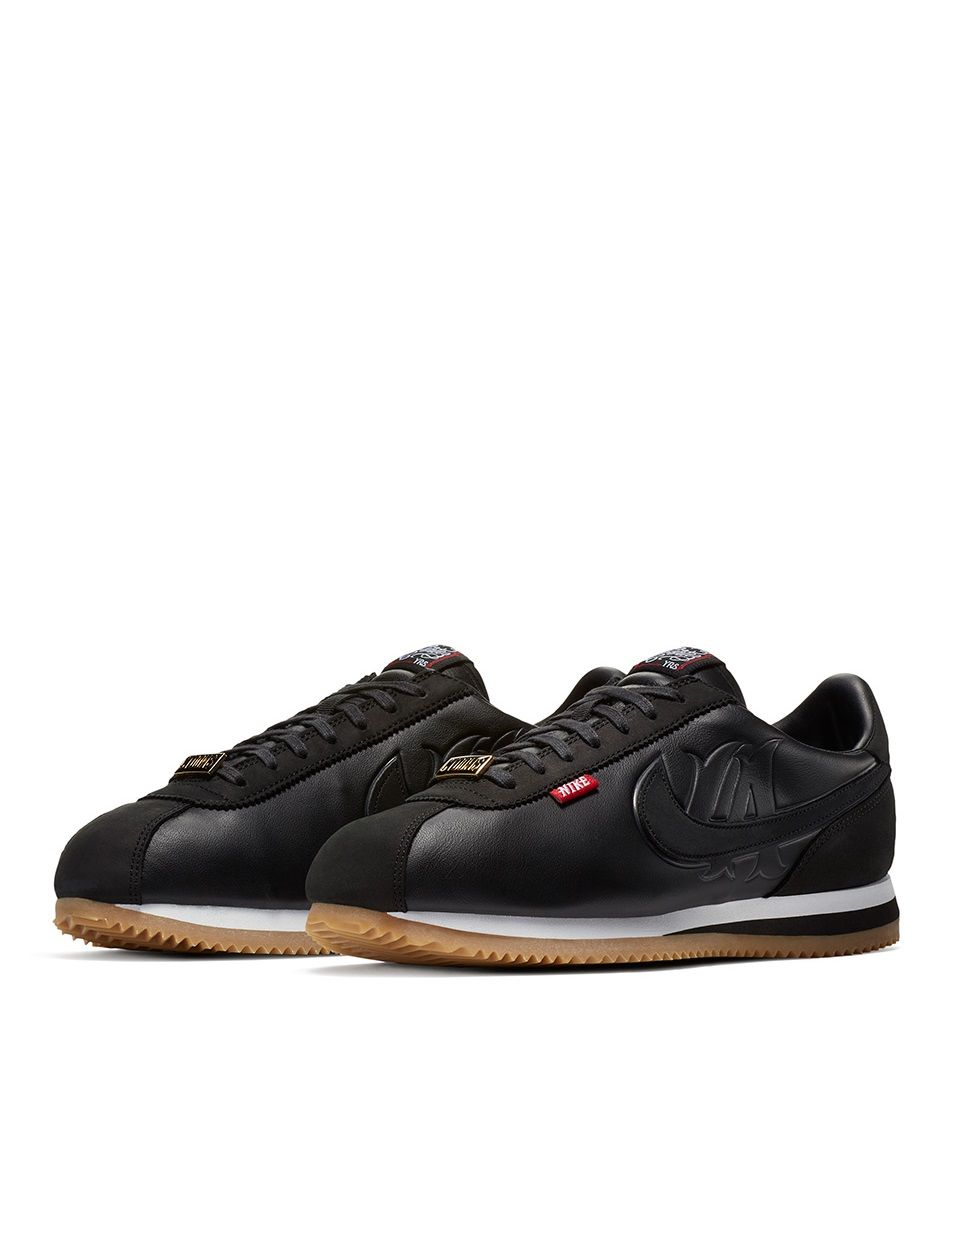 low priced c35c6 be559 store nike cortez limited edition mr cartoon 03a3e 4ac2d